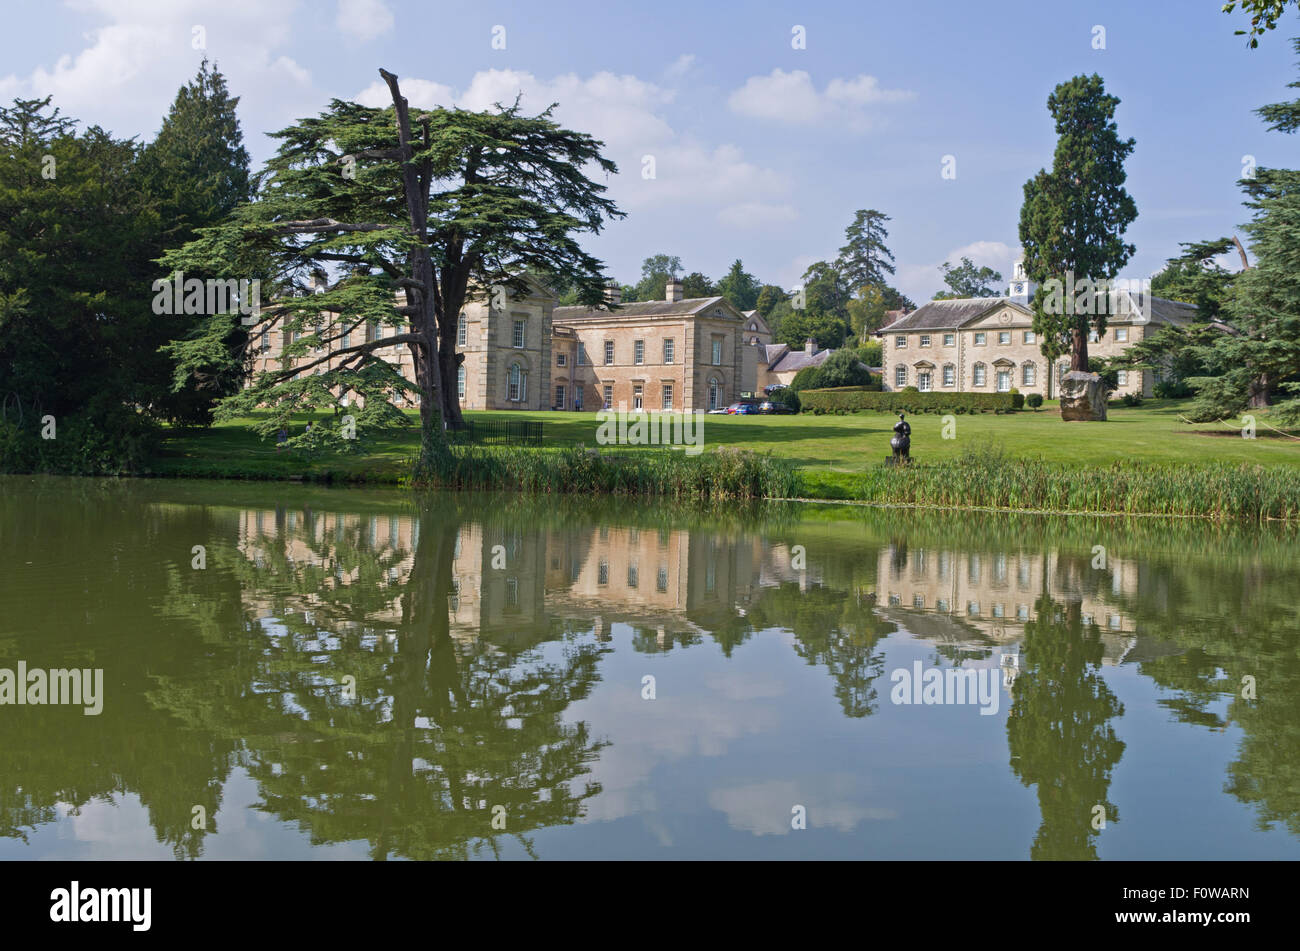 Compton Verney House in Warwickshire, seen from across the lake; it now houses an award winning art gallery - Stock Image